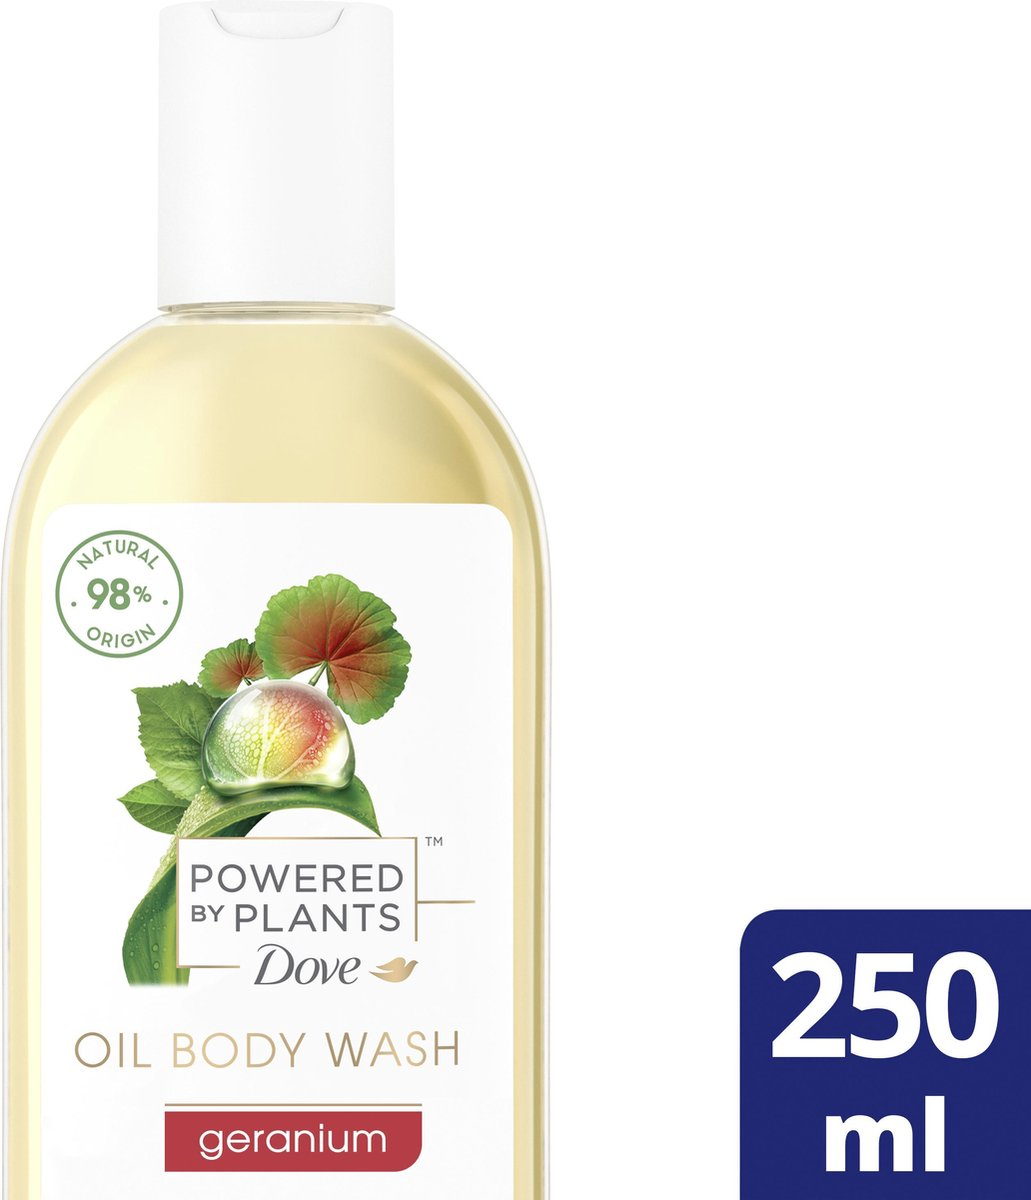 Dove Powered by Plants Douchegel Oil Body Wash Geranium 250 ml